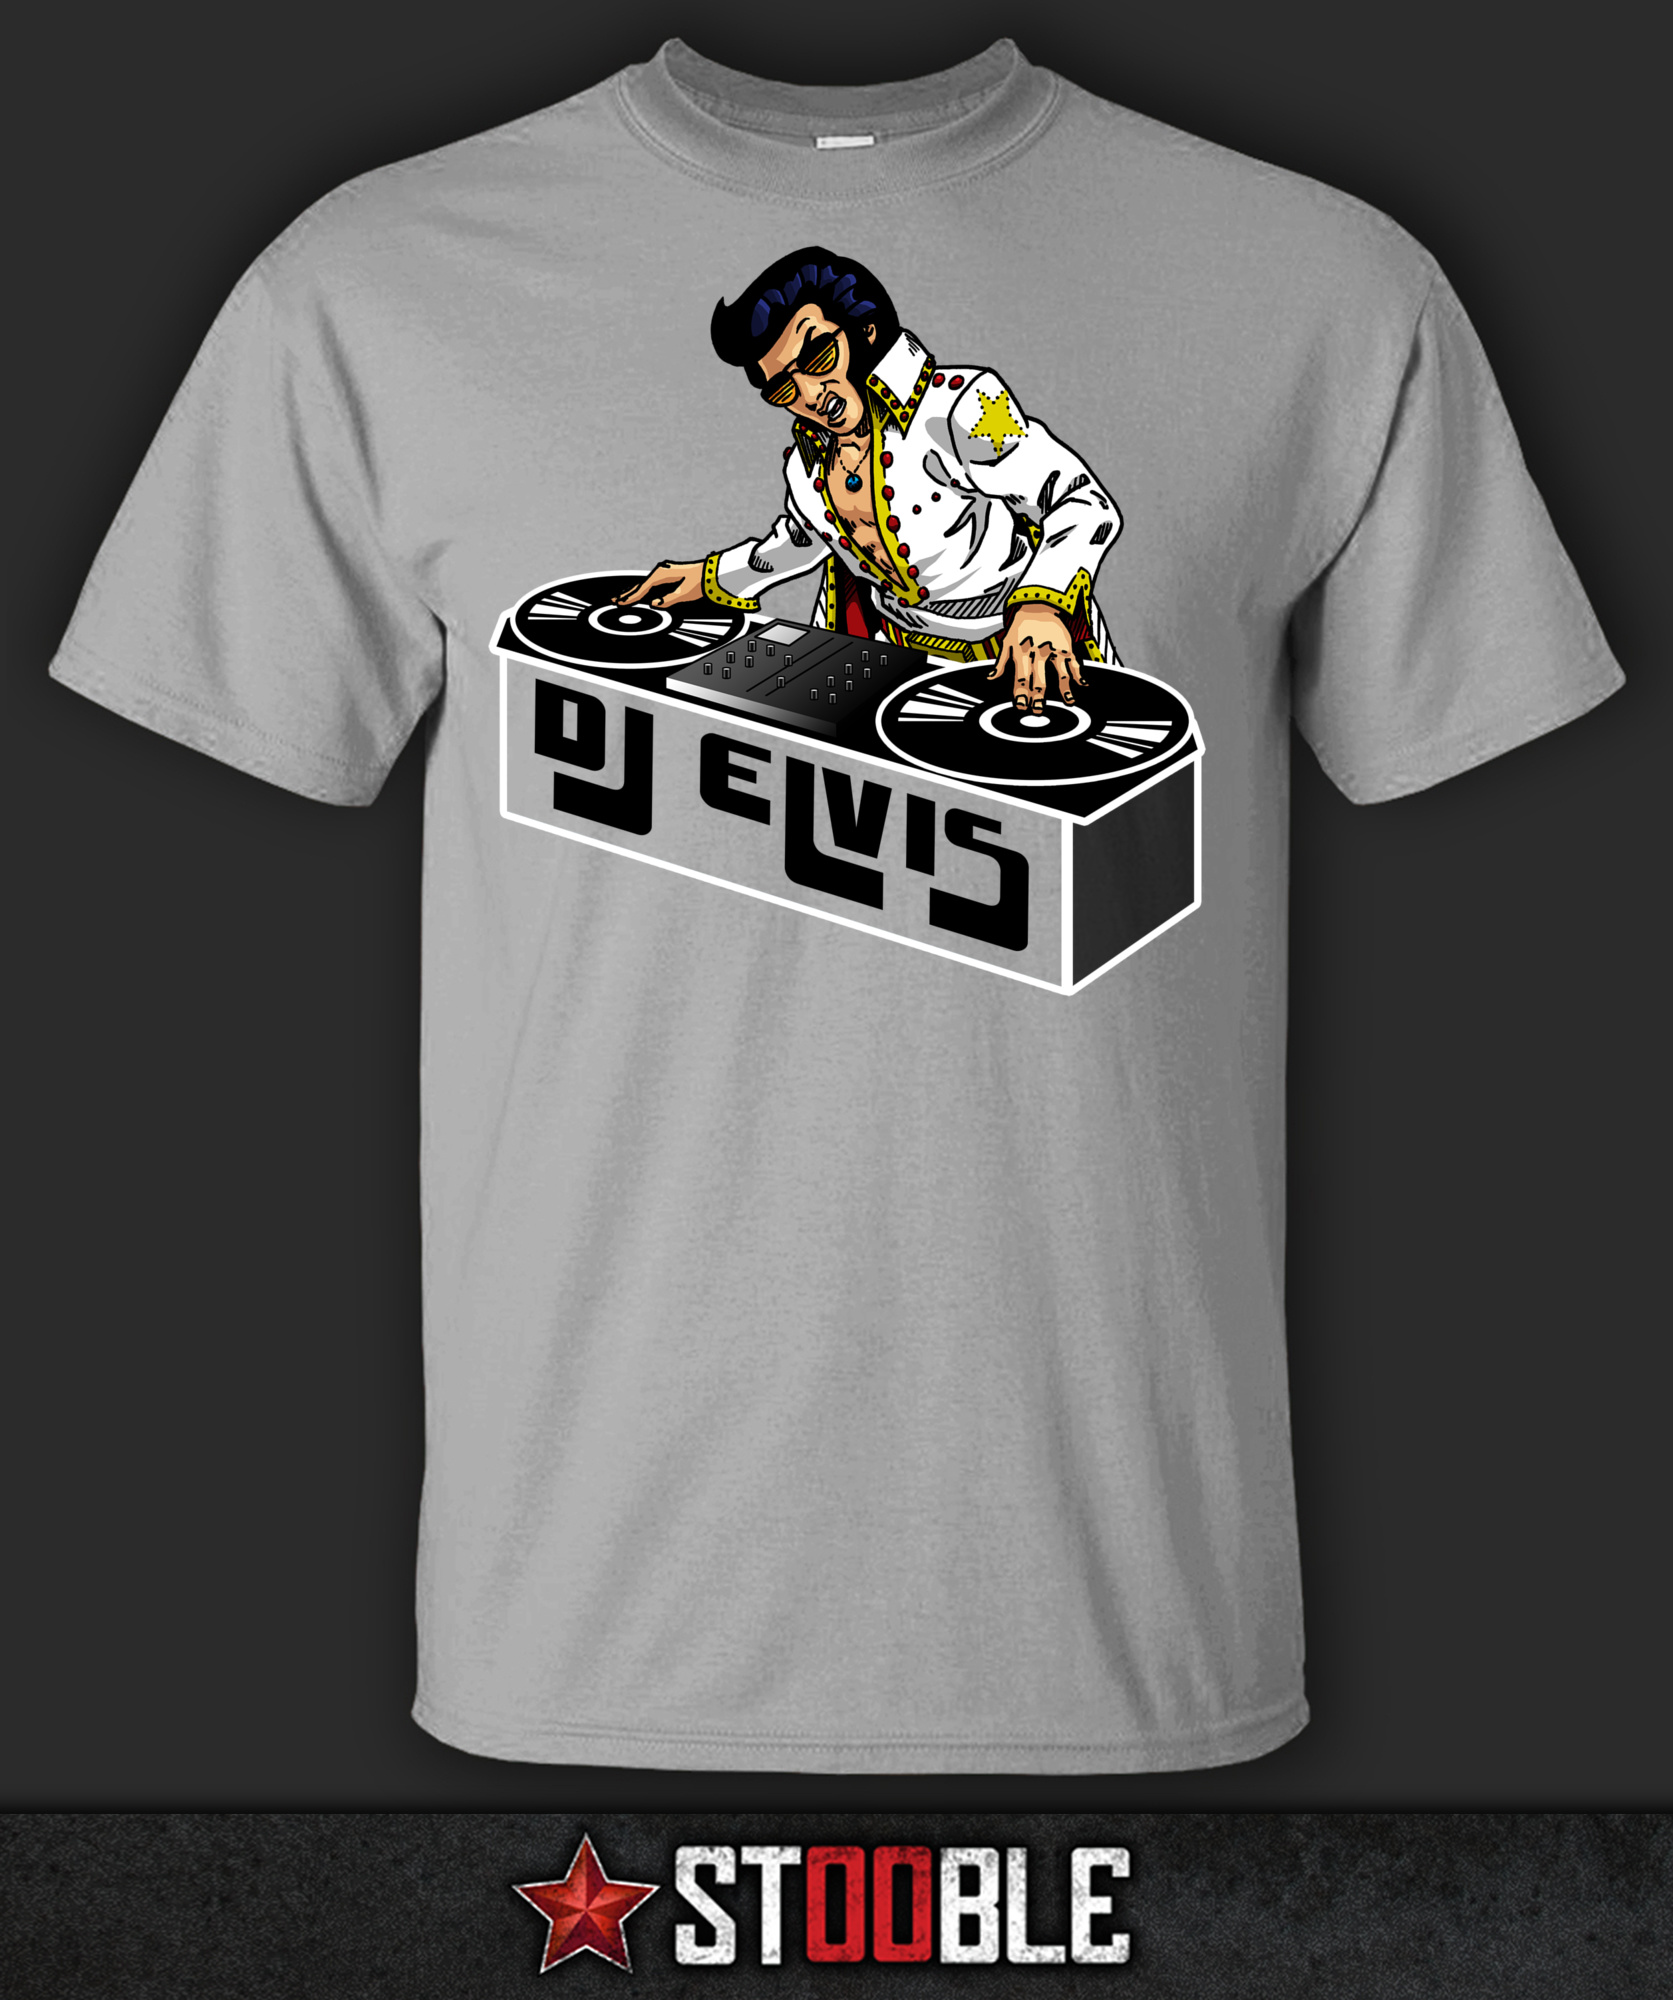 Dj elvis t shirt new direct from manufacturer ebay Dj t shirt design